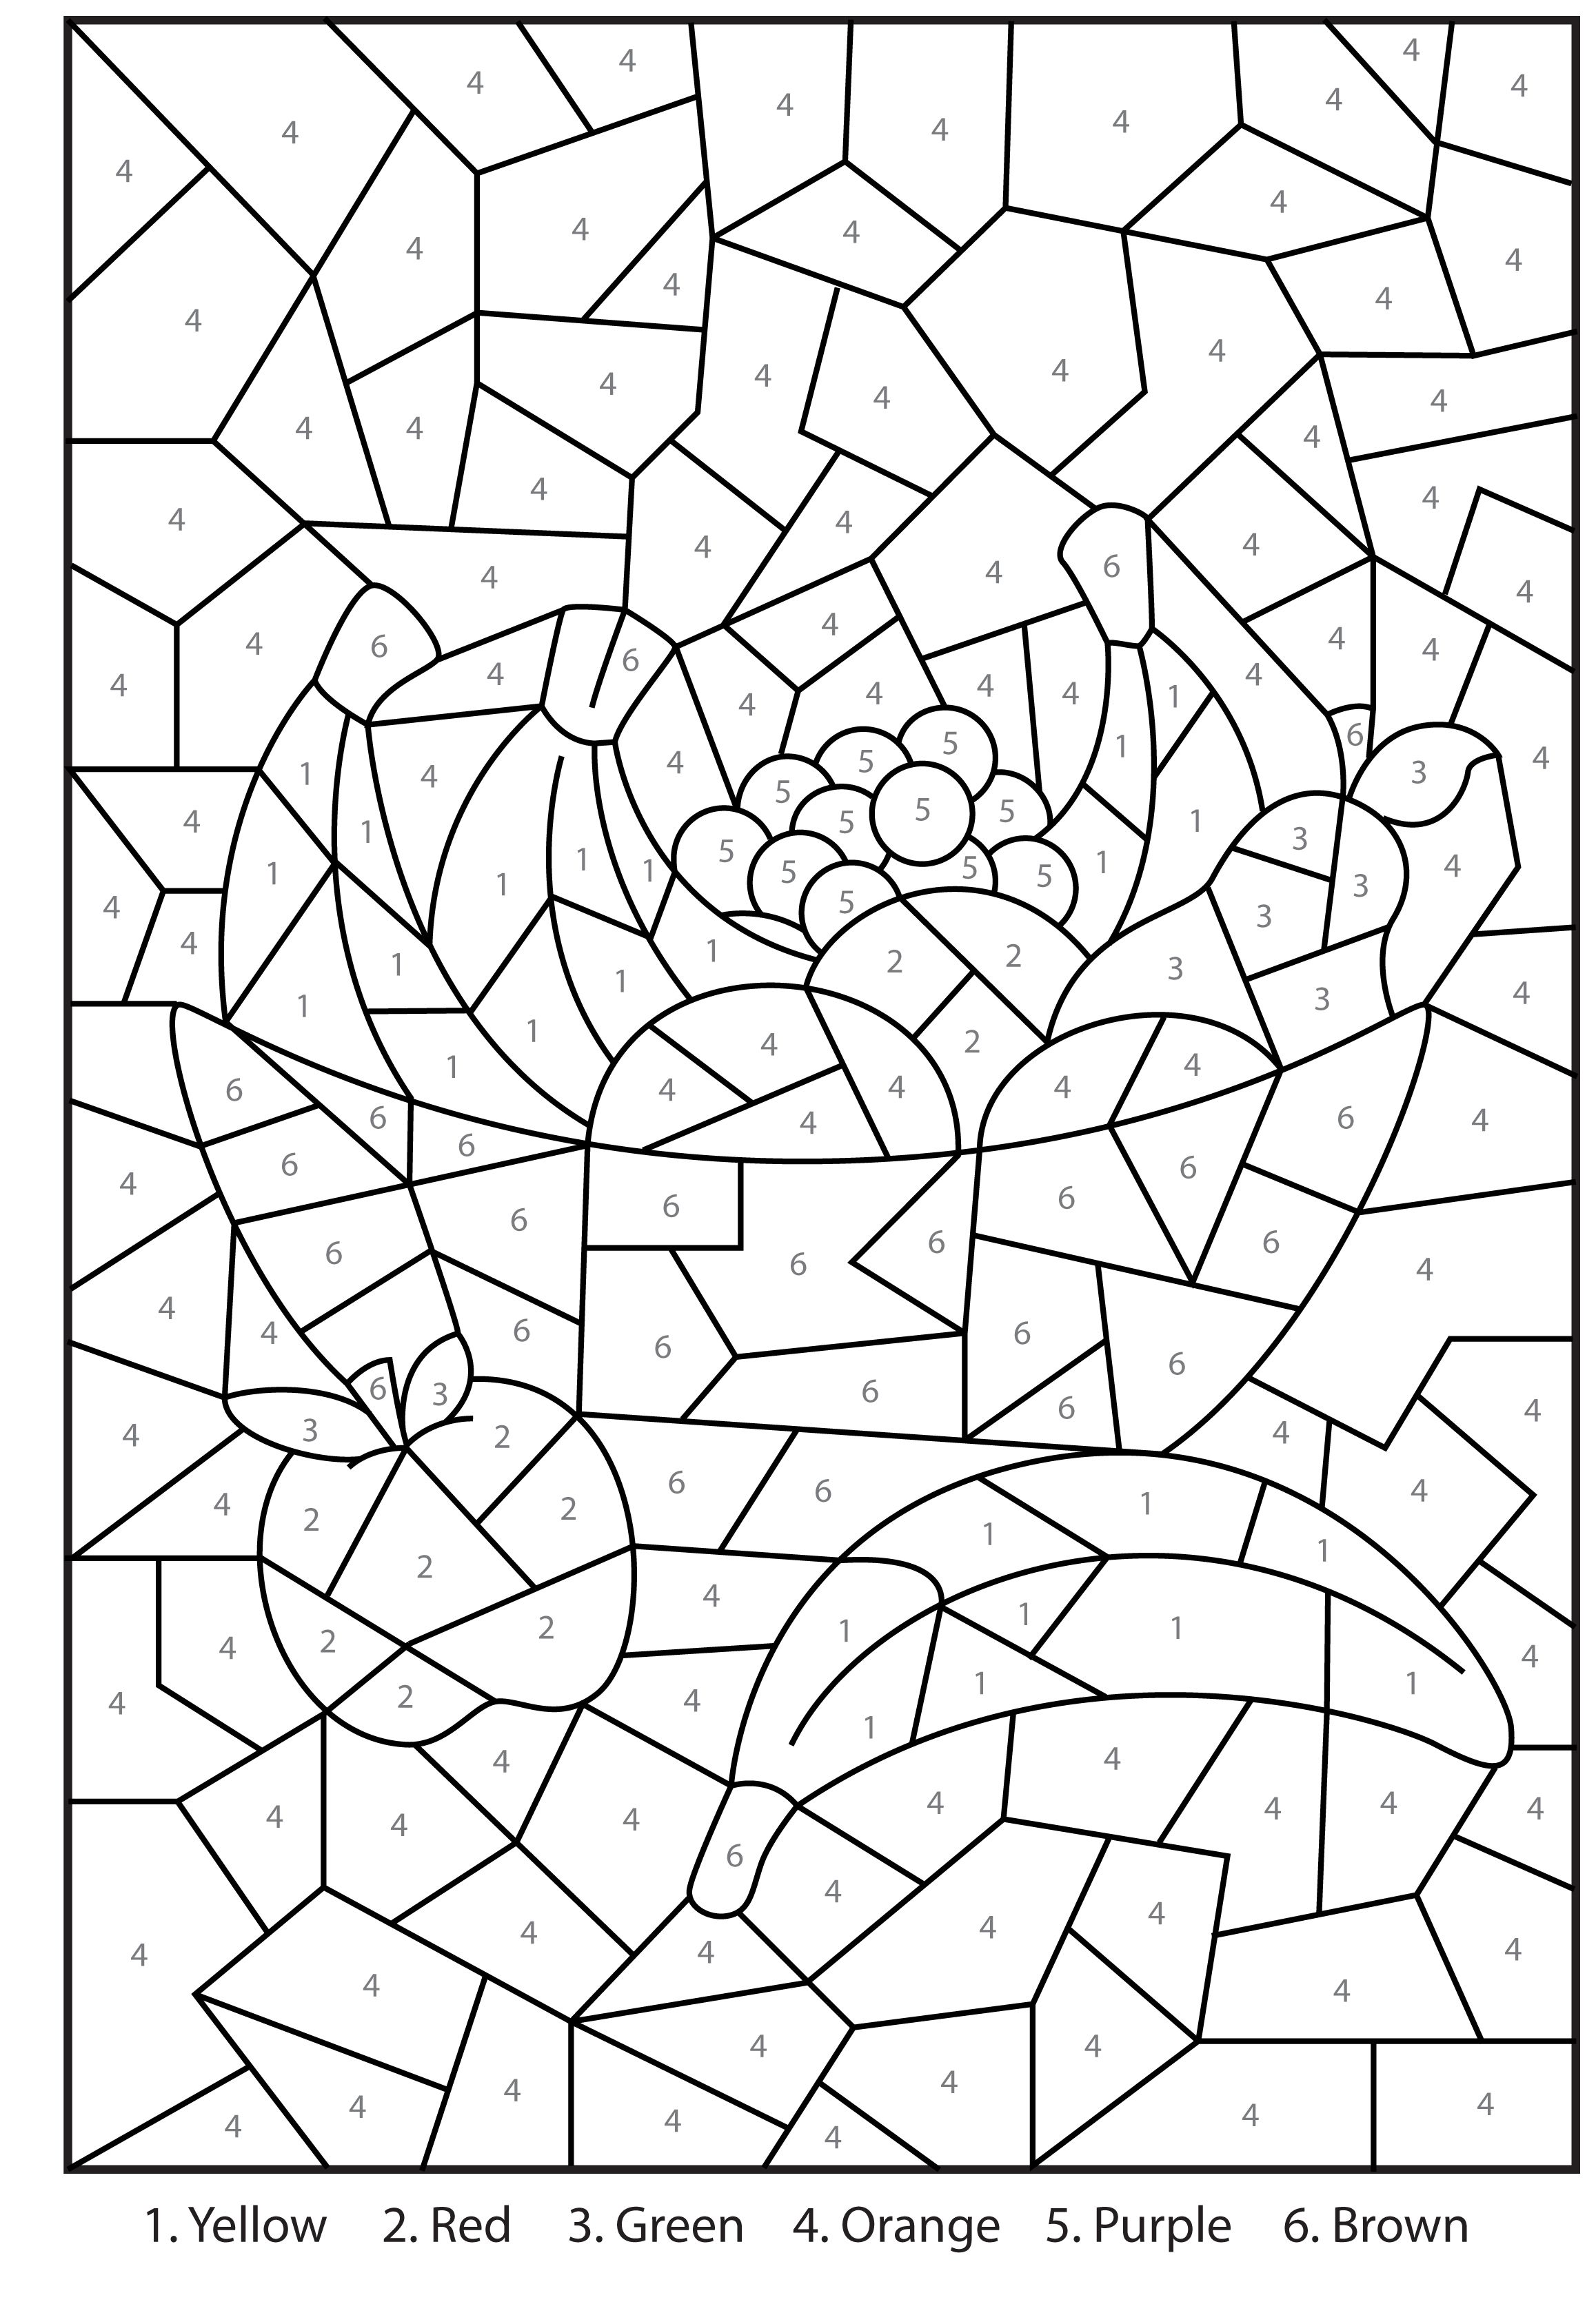 Coloring Pages : Coloring Ideas Pages For Kids With Numbers ...